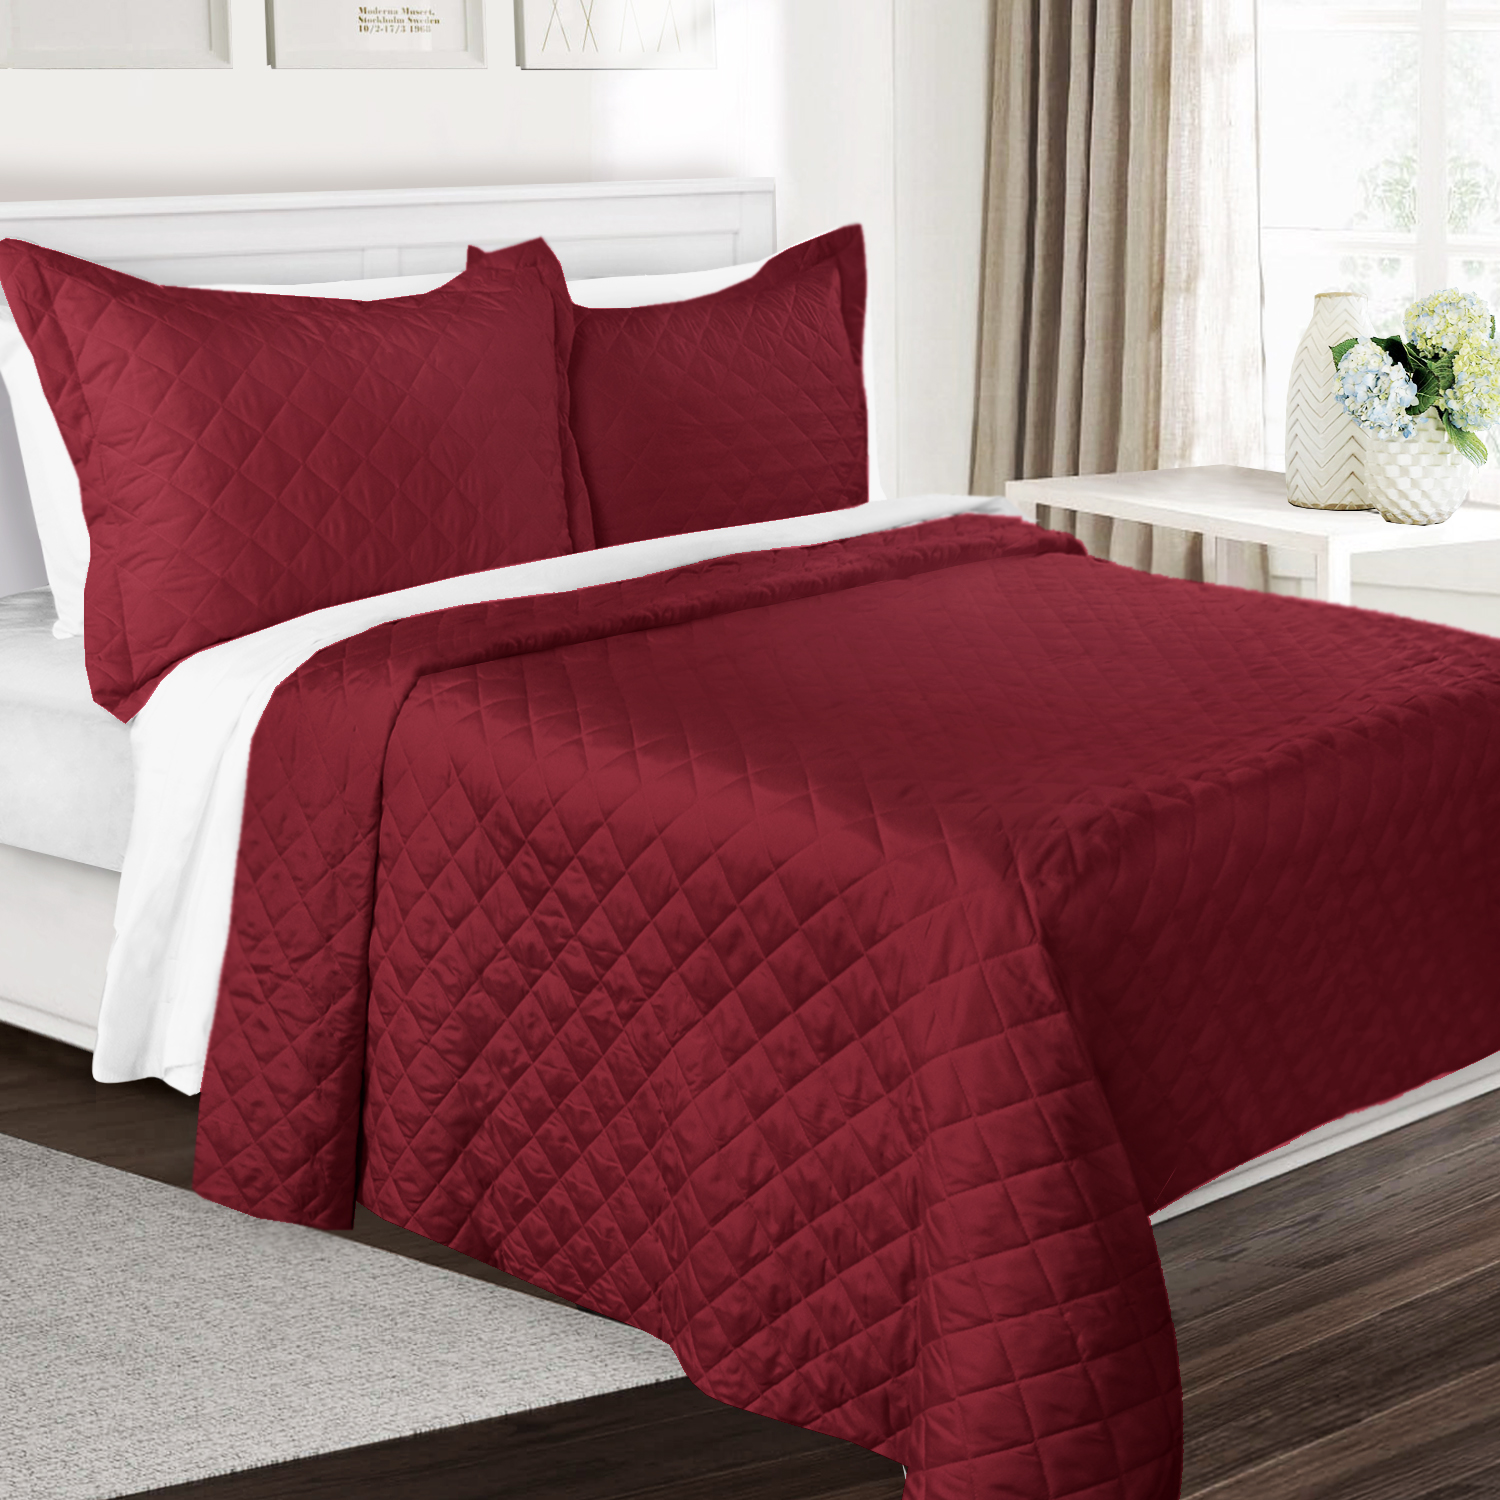 3 Piece Quilt Set Full/Queen Size By Clara Clark - Luxury Bedspread Coverlet Soft All Season Microfiber - Machine Washable - Comes in Many Colors - set includes Quilt & Shams